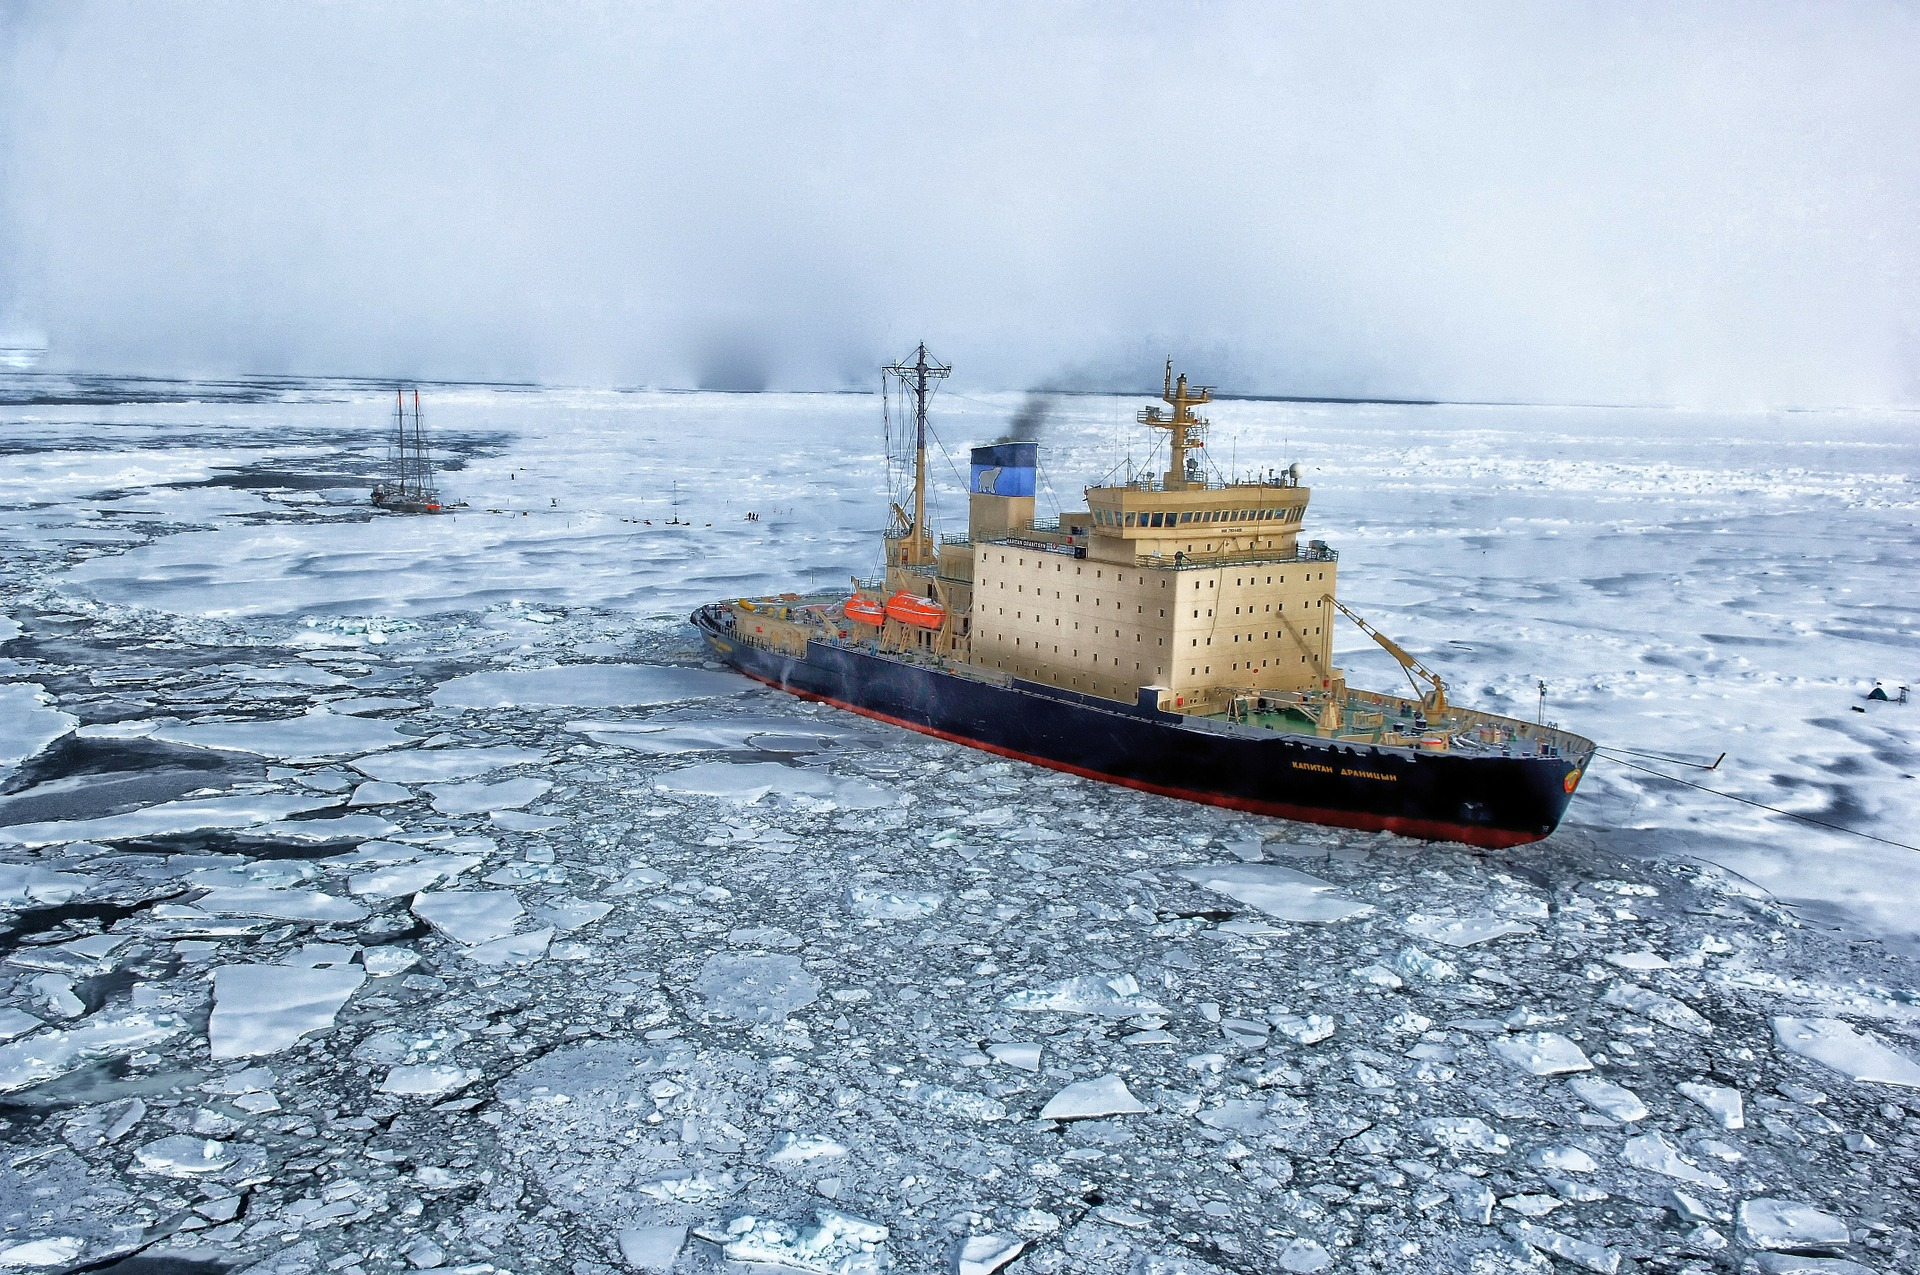 Ship in the Arctic